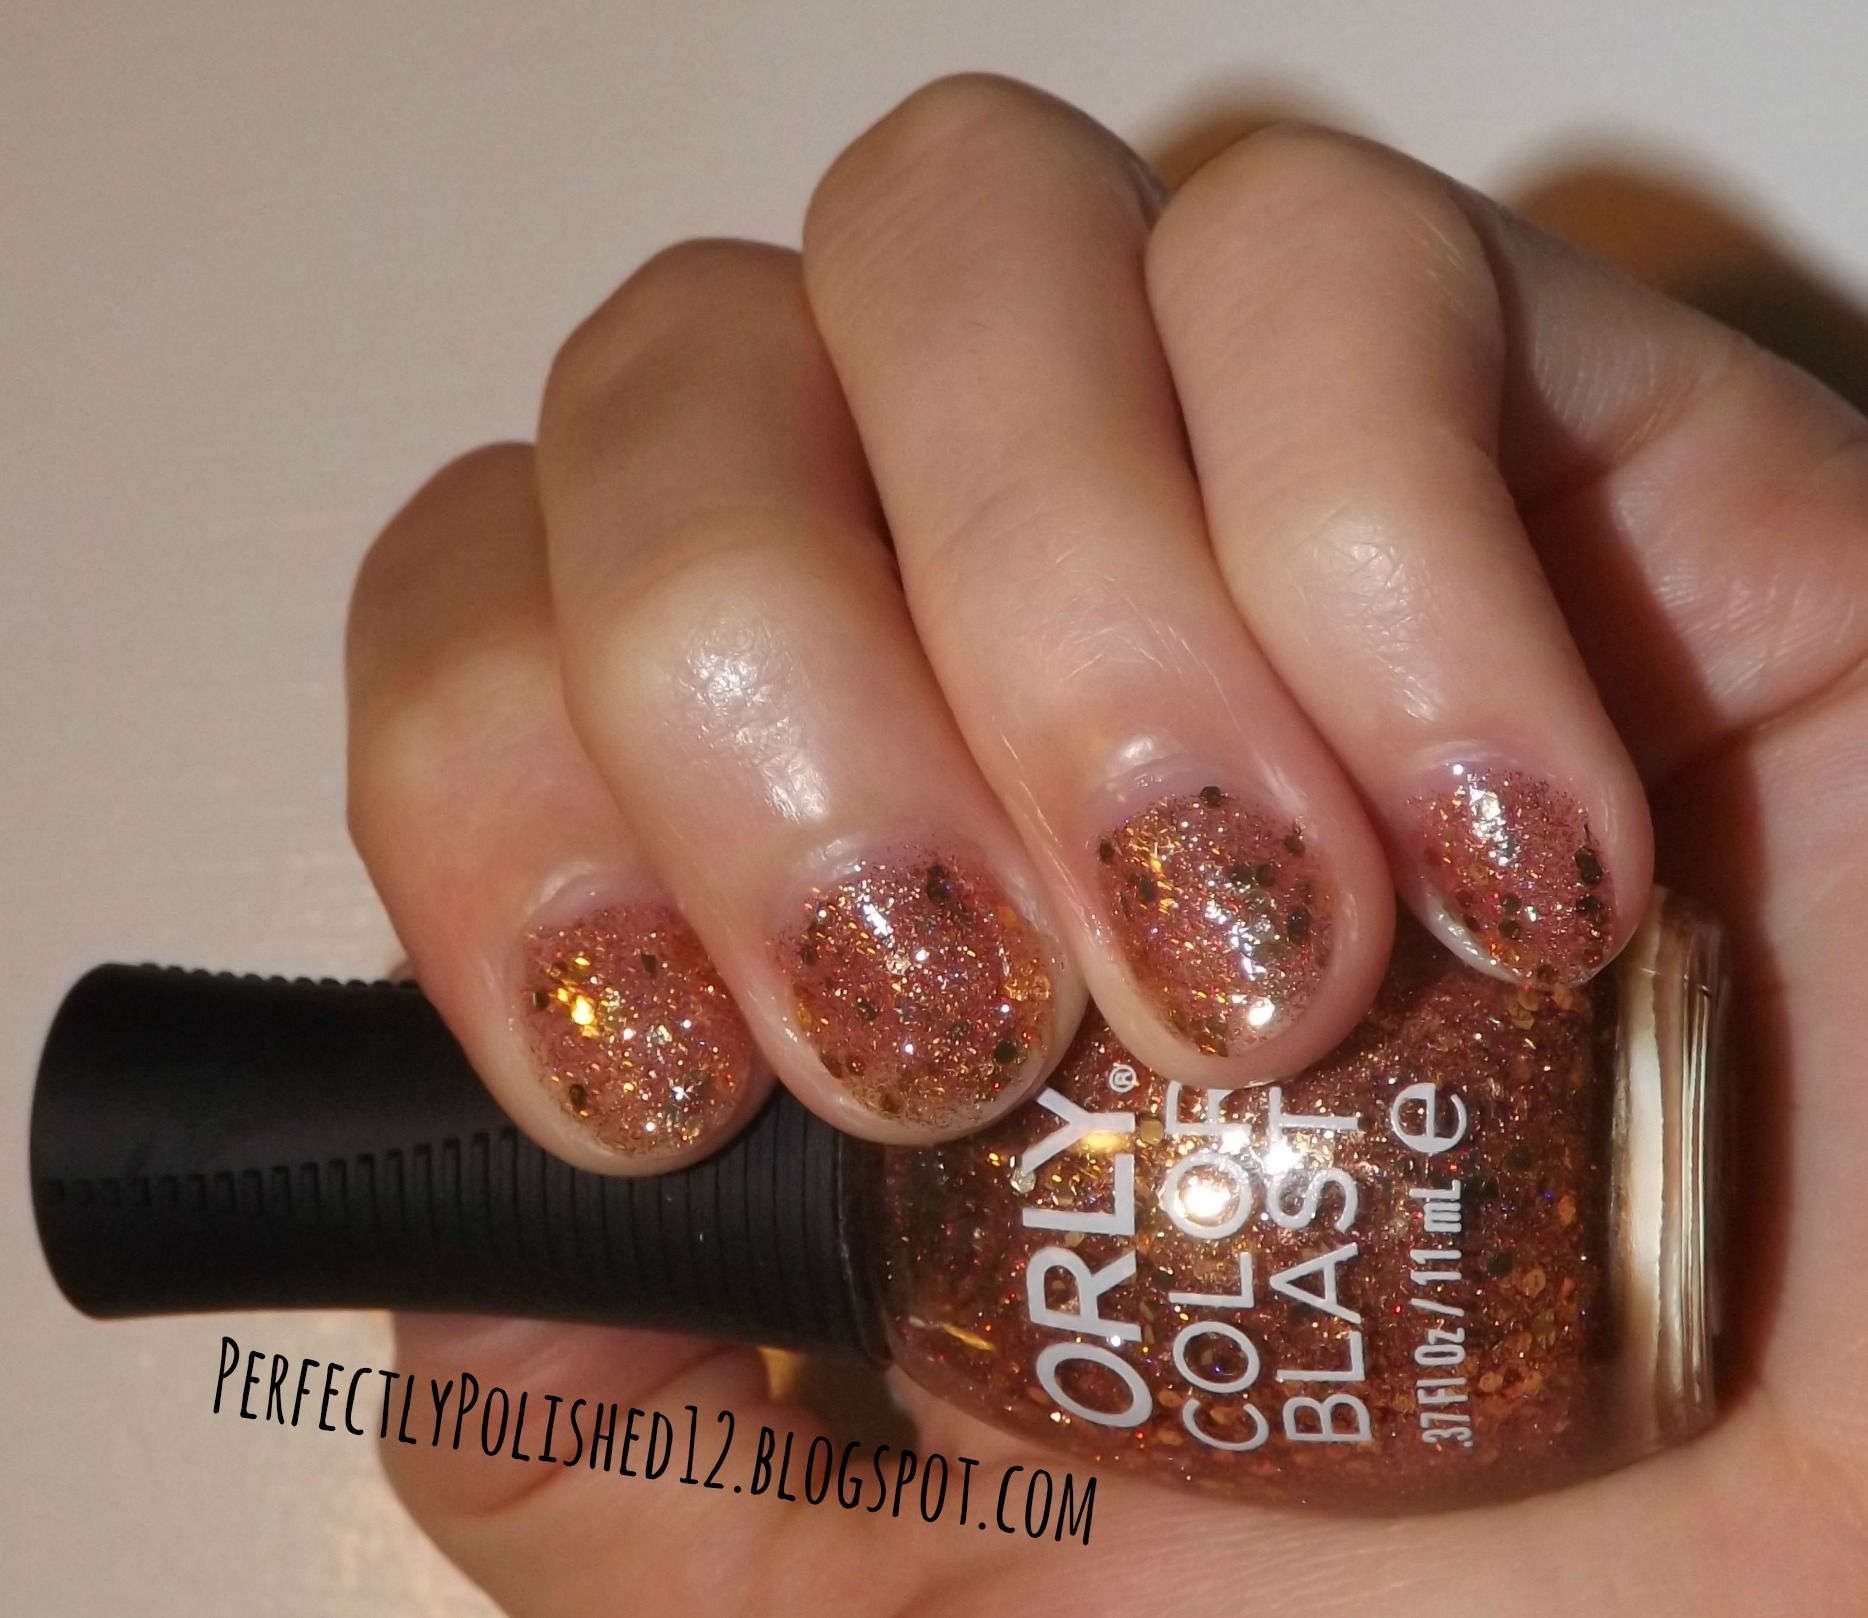 Perfectlypolished12 Orly Color Blast S Price Of Fame Nail Polish Gold Glitter